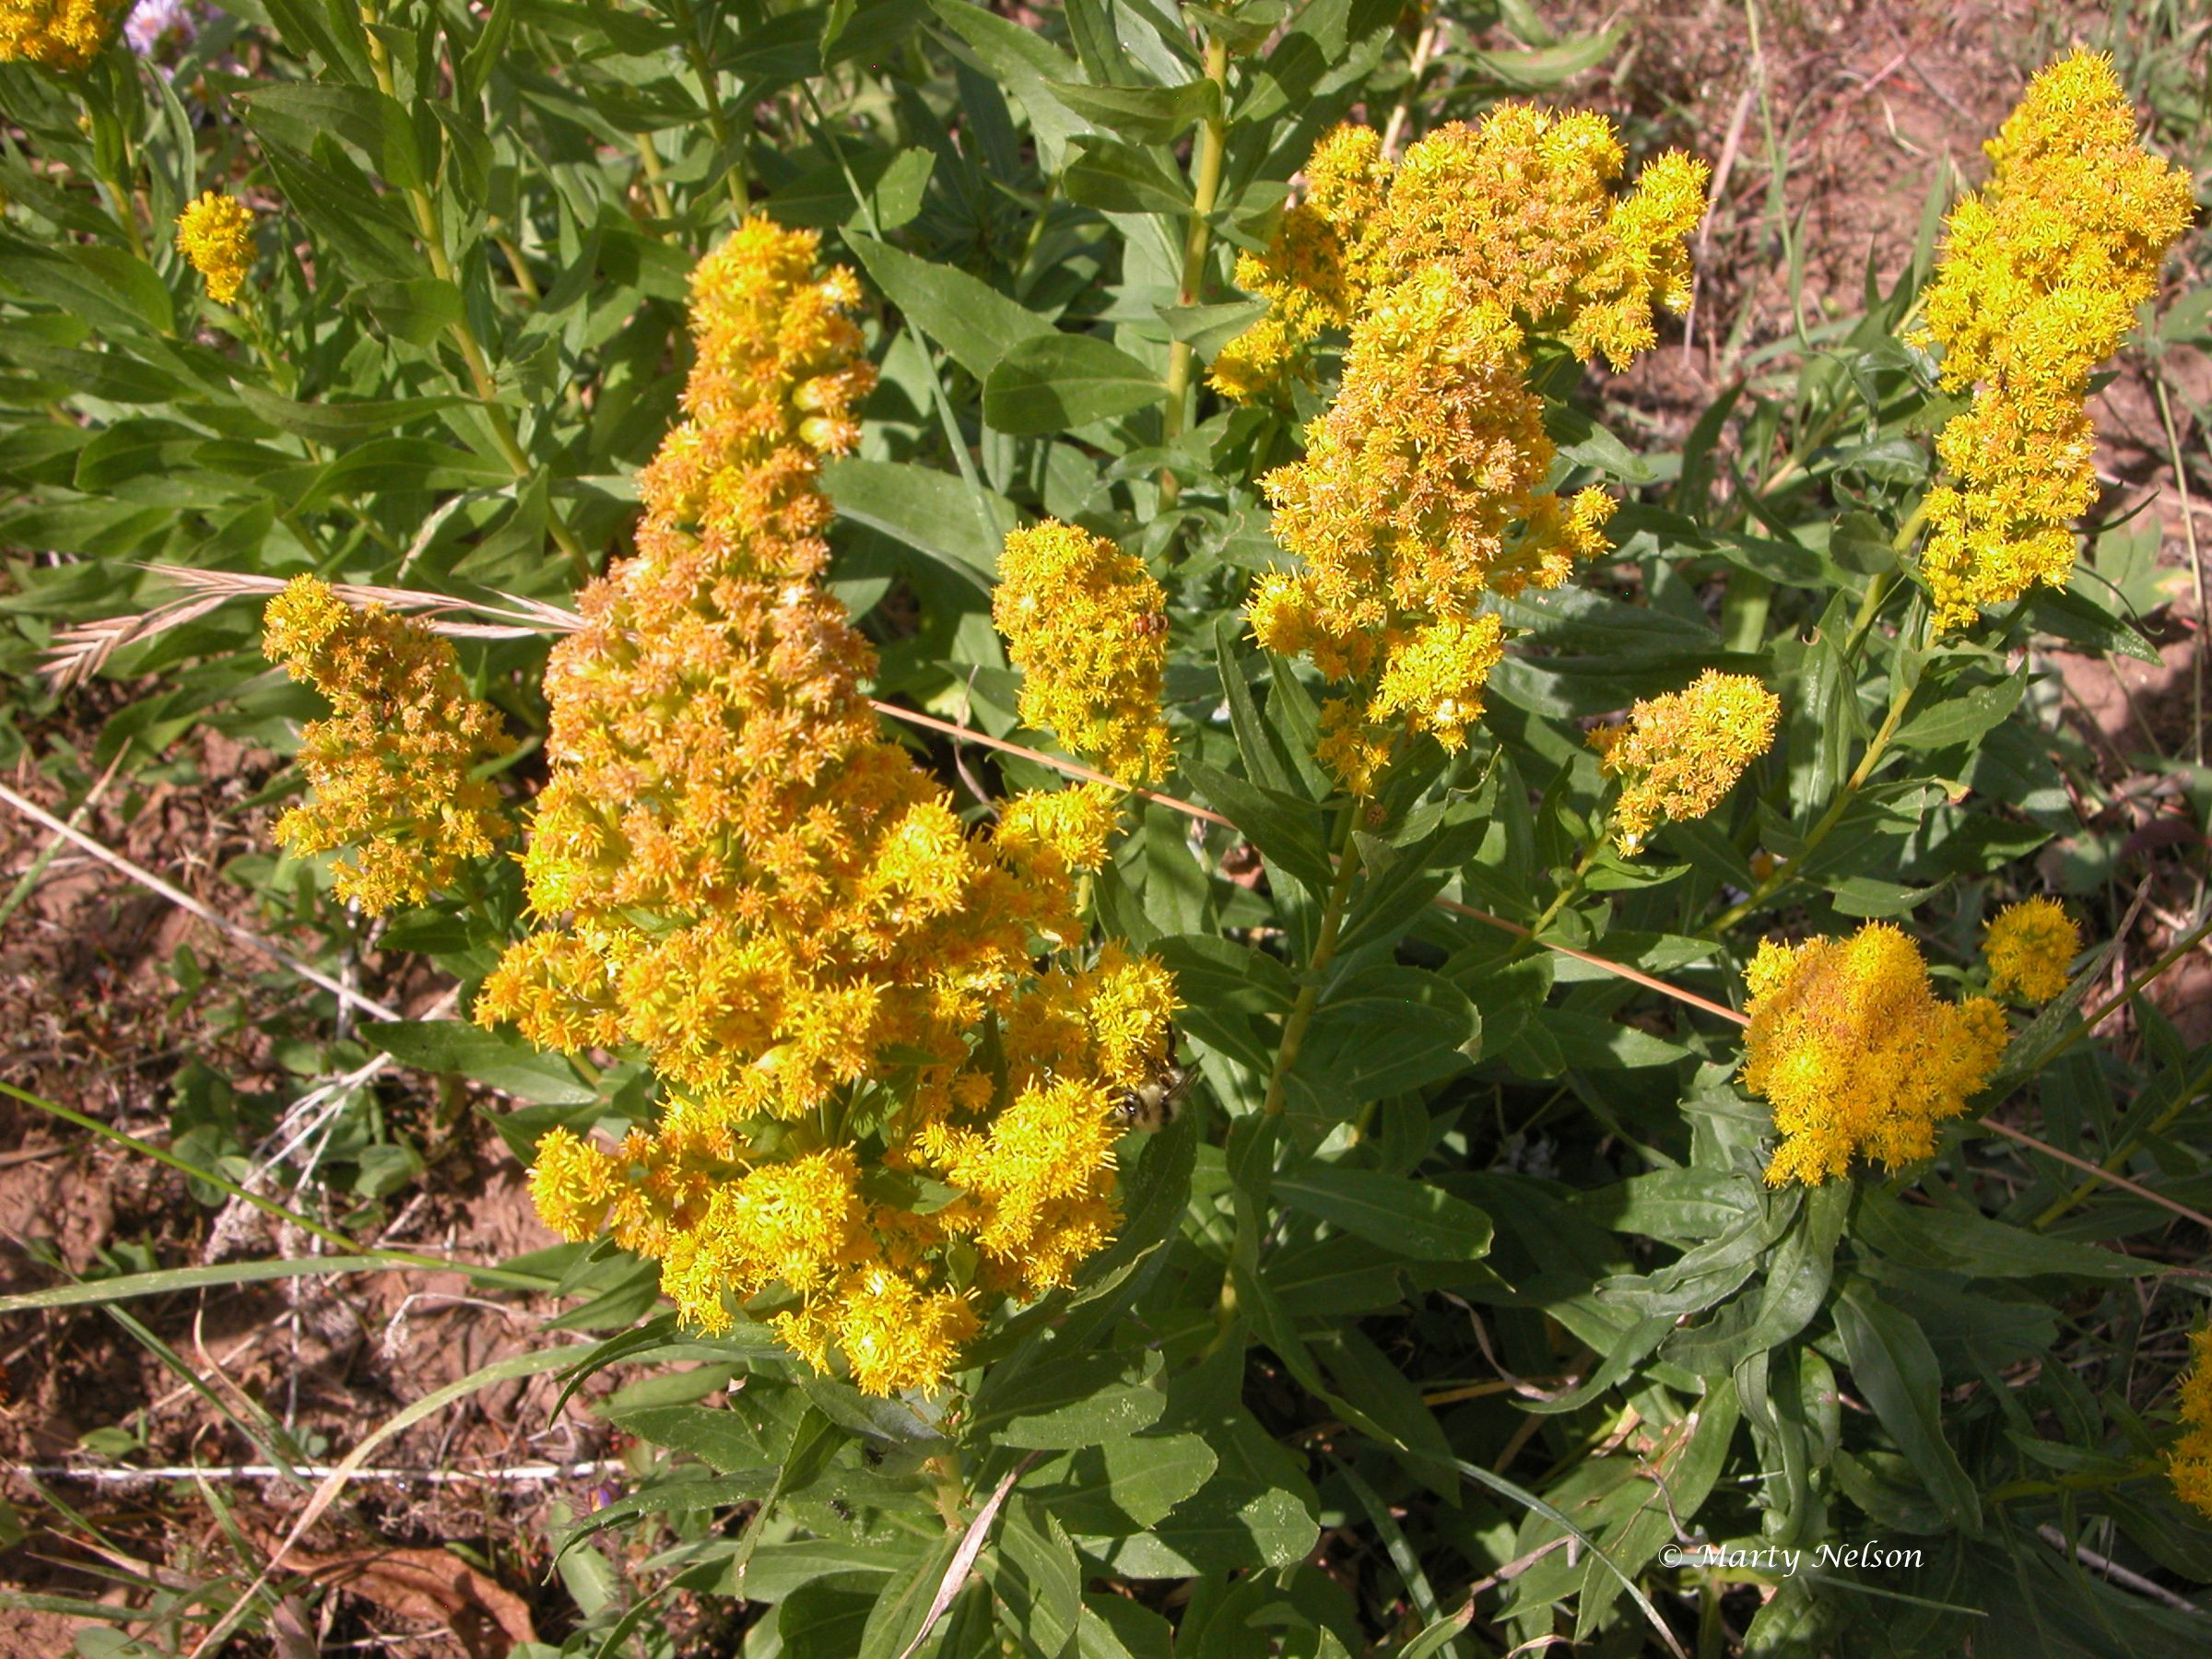 Goldenrod blooming in the Wallowa Mountains of eastern Oregon © copyright by Marty